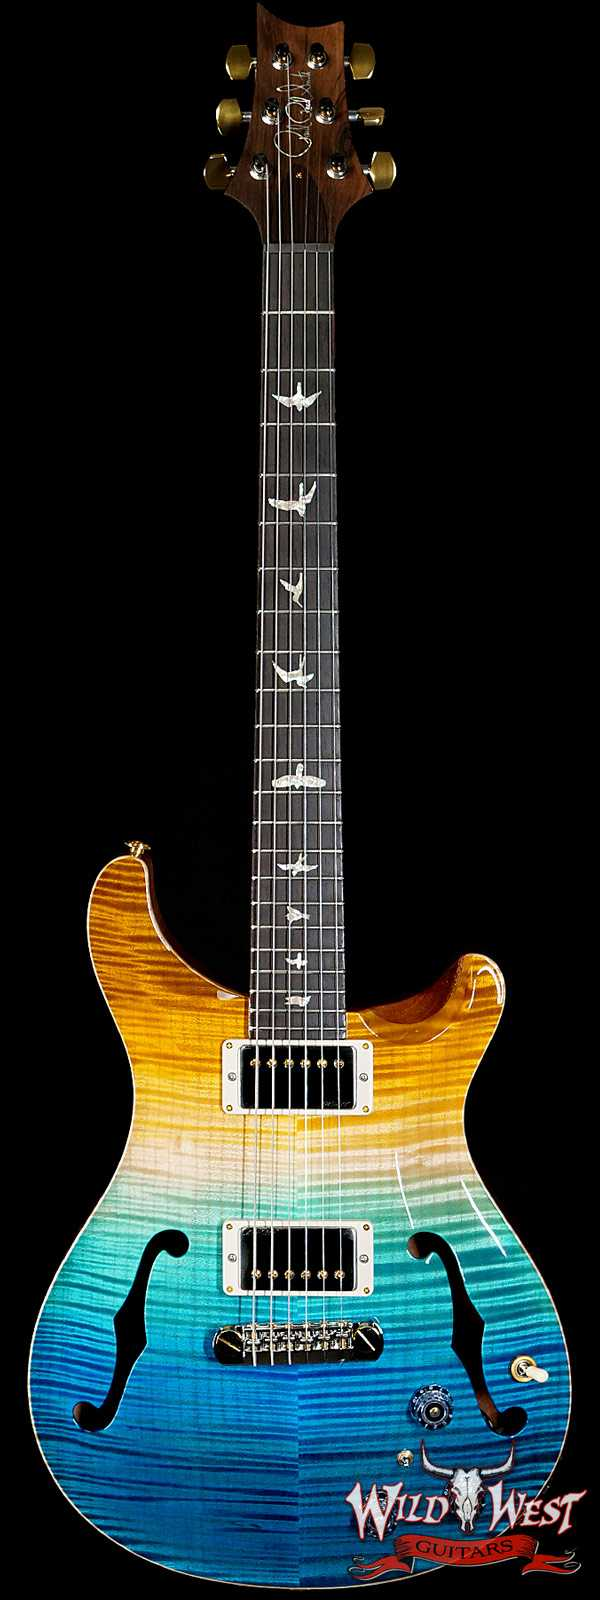 PRS Wild West Guitars 20th Anniversary Limited Run # 9 of 40 Wood Library Artist Package Hollowbody I Piezo HB1 Beach Cross Fade(Private Stock Color)